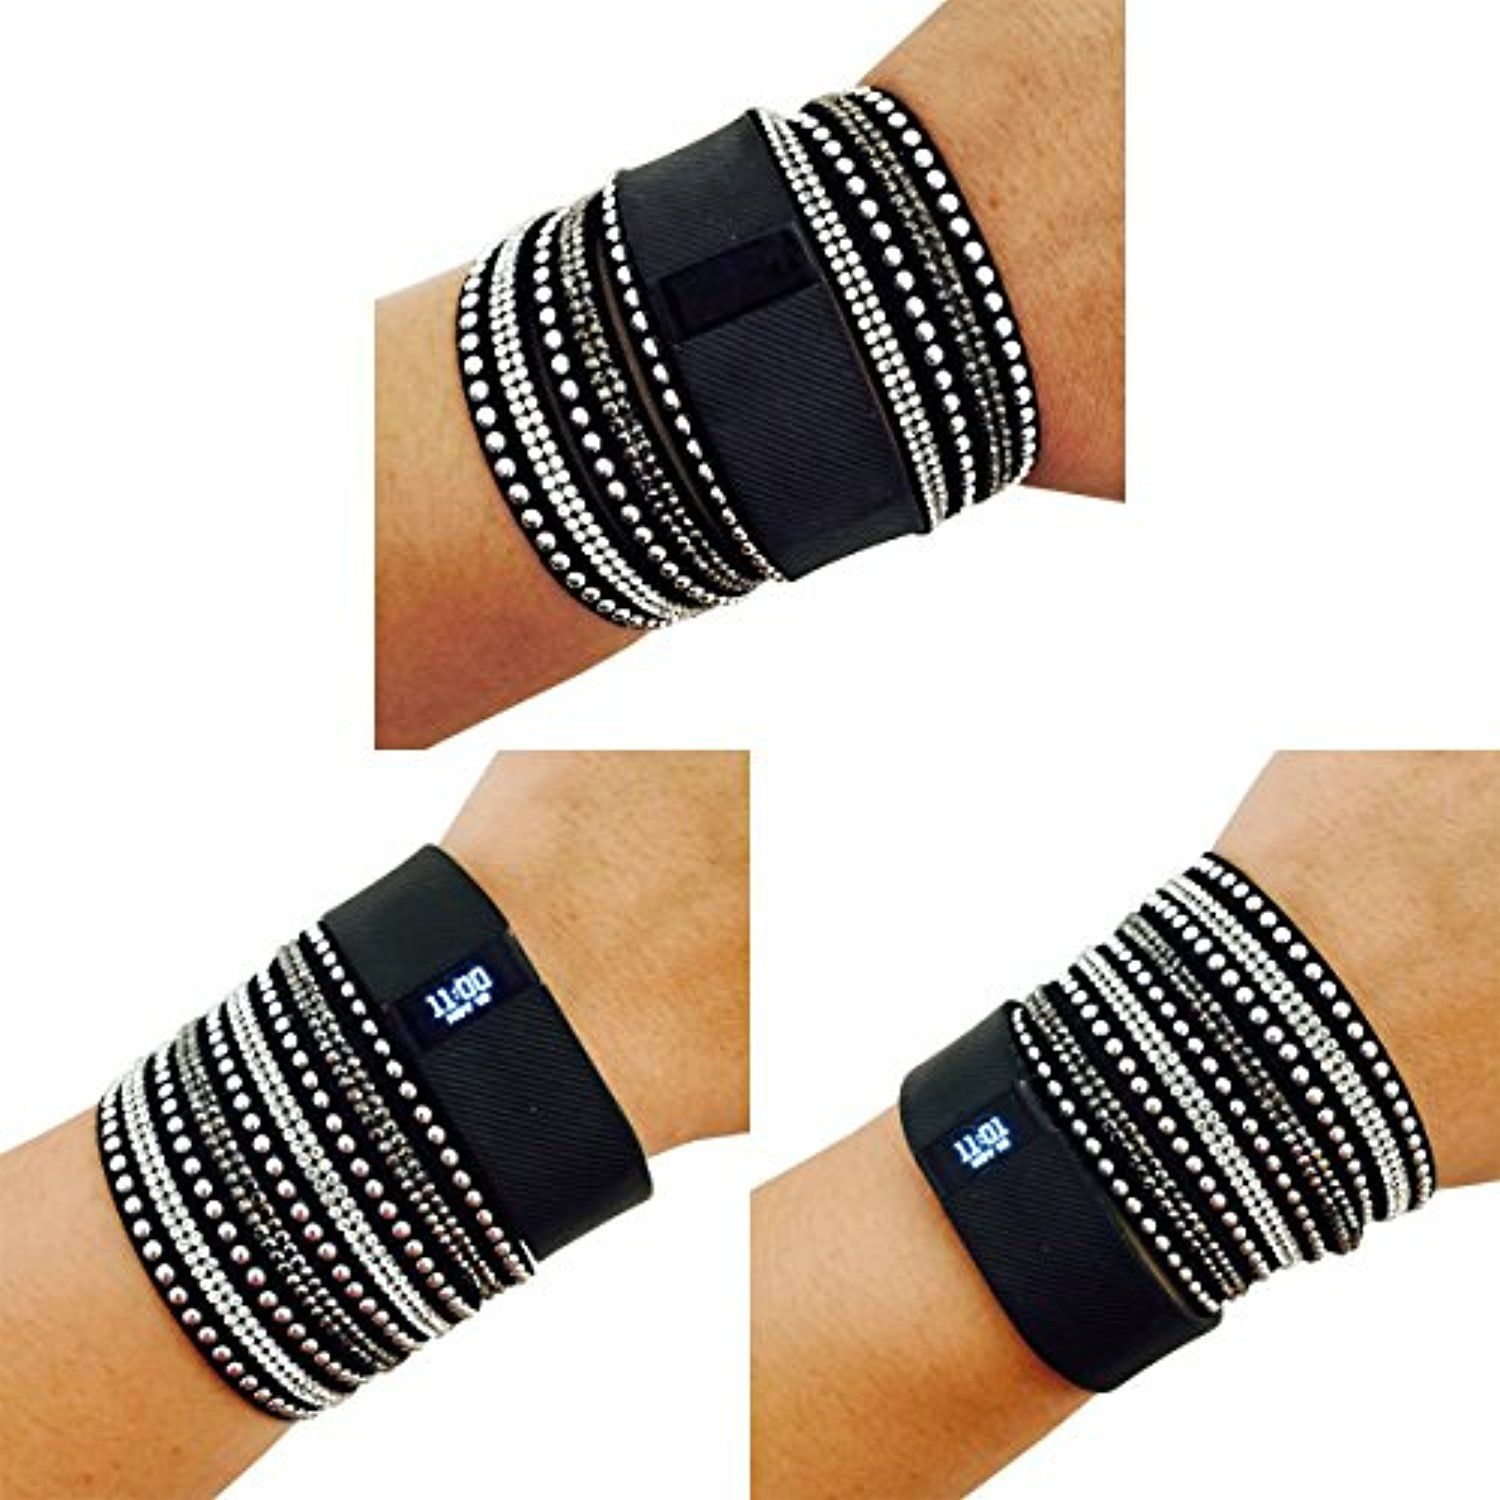 fbb0eb0a4940 Activity Tracker Bracelet for Fitbit Charge and Other Fitness Trackers -  The S M TINLEY Rhinestone Studded Snap Fitbi -- Be sure to check out this  awesome ...